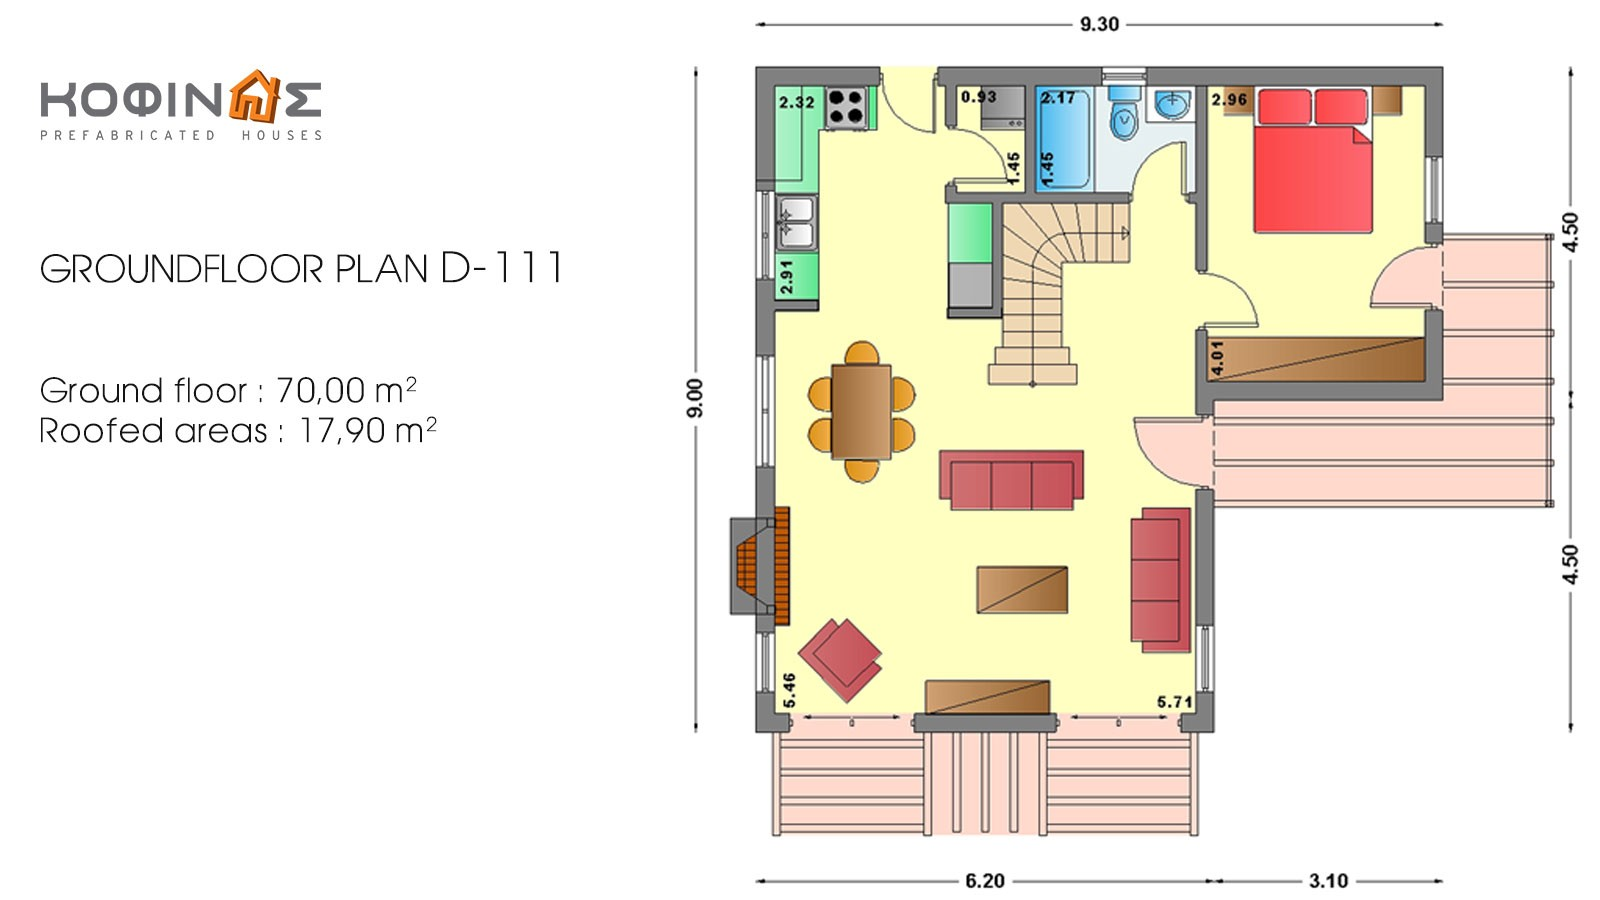 2-story house D-111, total surface of 111,80 m²